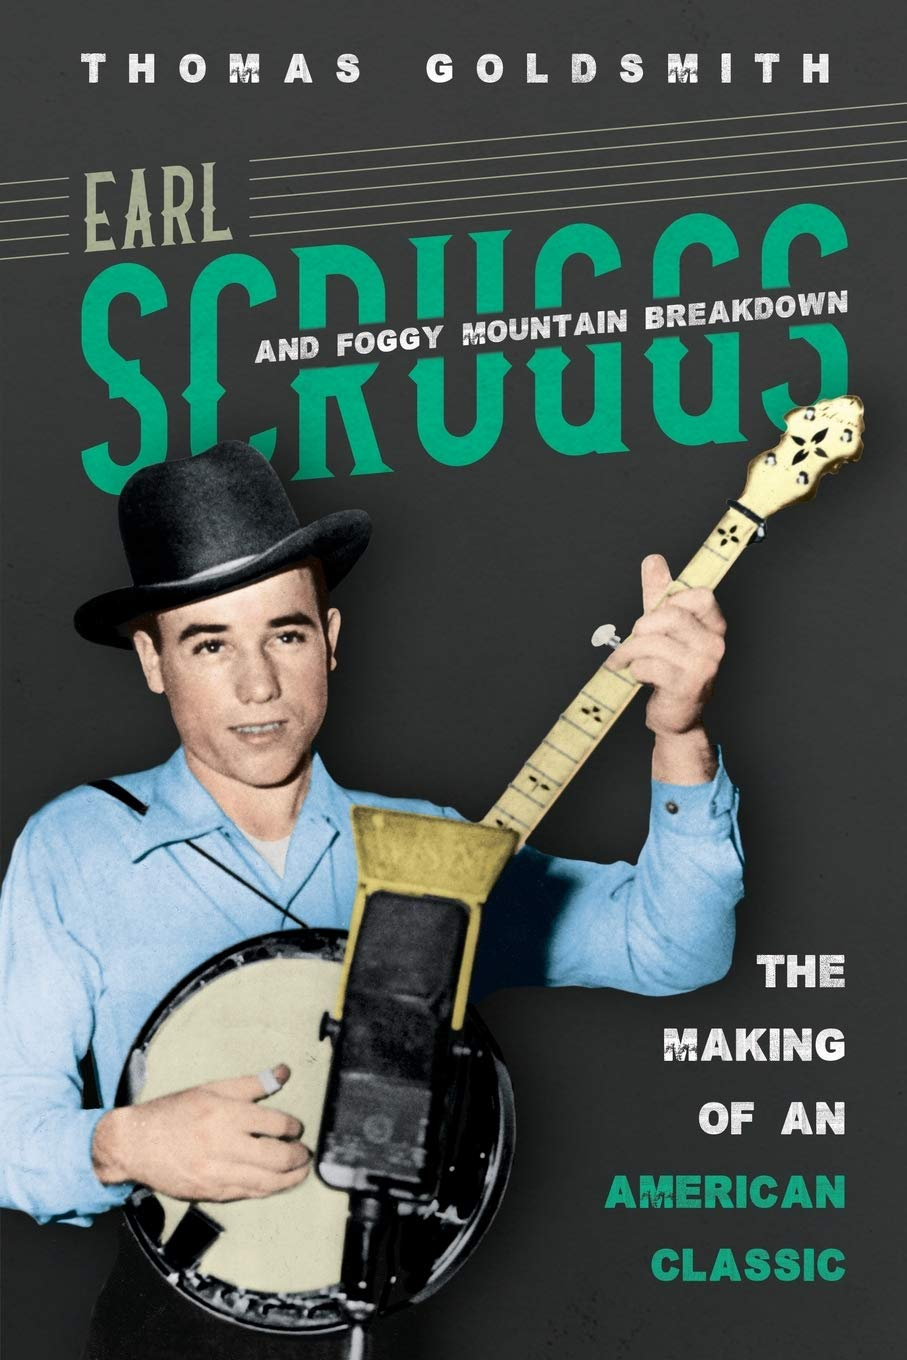 Earl Scruggs And Foggy Mountain Breakdown  The Making Of An American Classic  Music In American Life